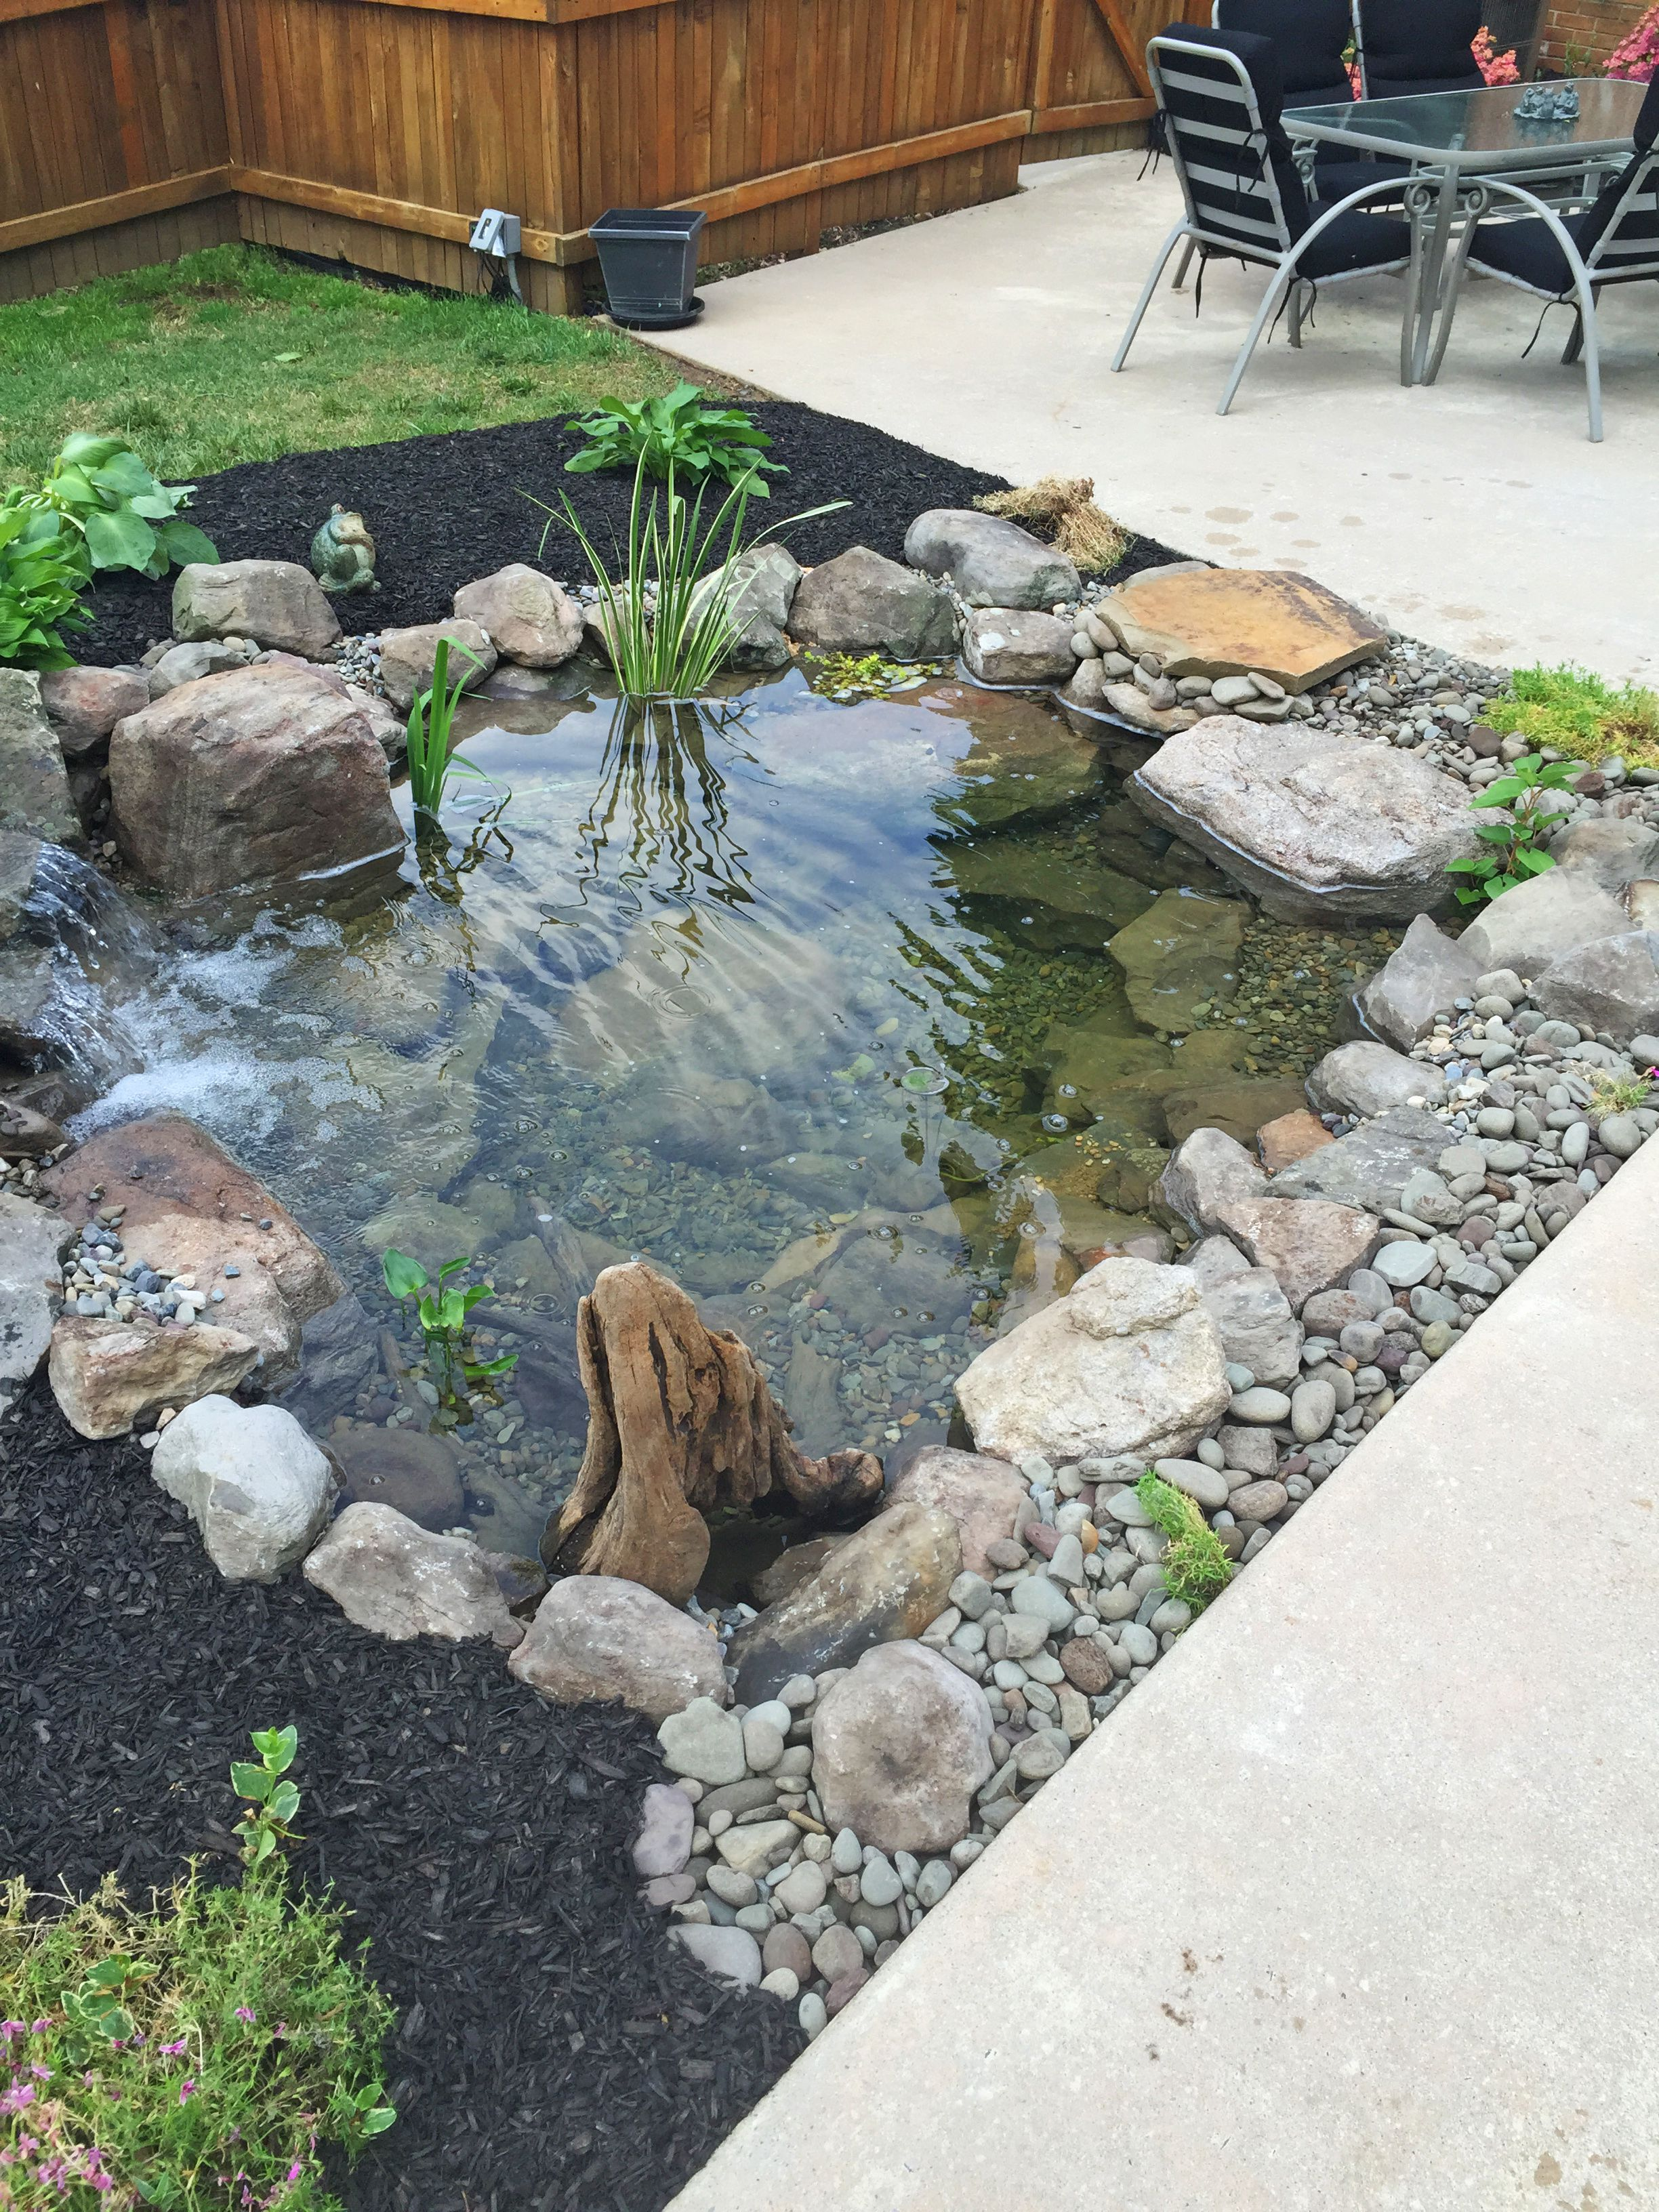 Backyard fish pond waterfall koi water garden waterscapes for Koi pool water gardens blackpool